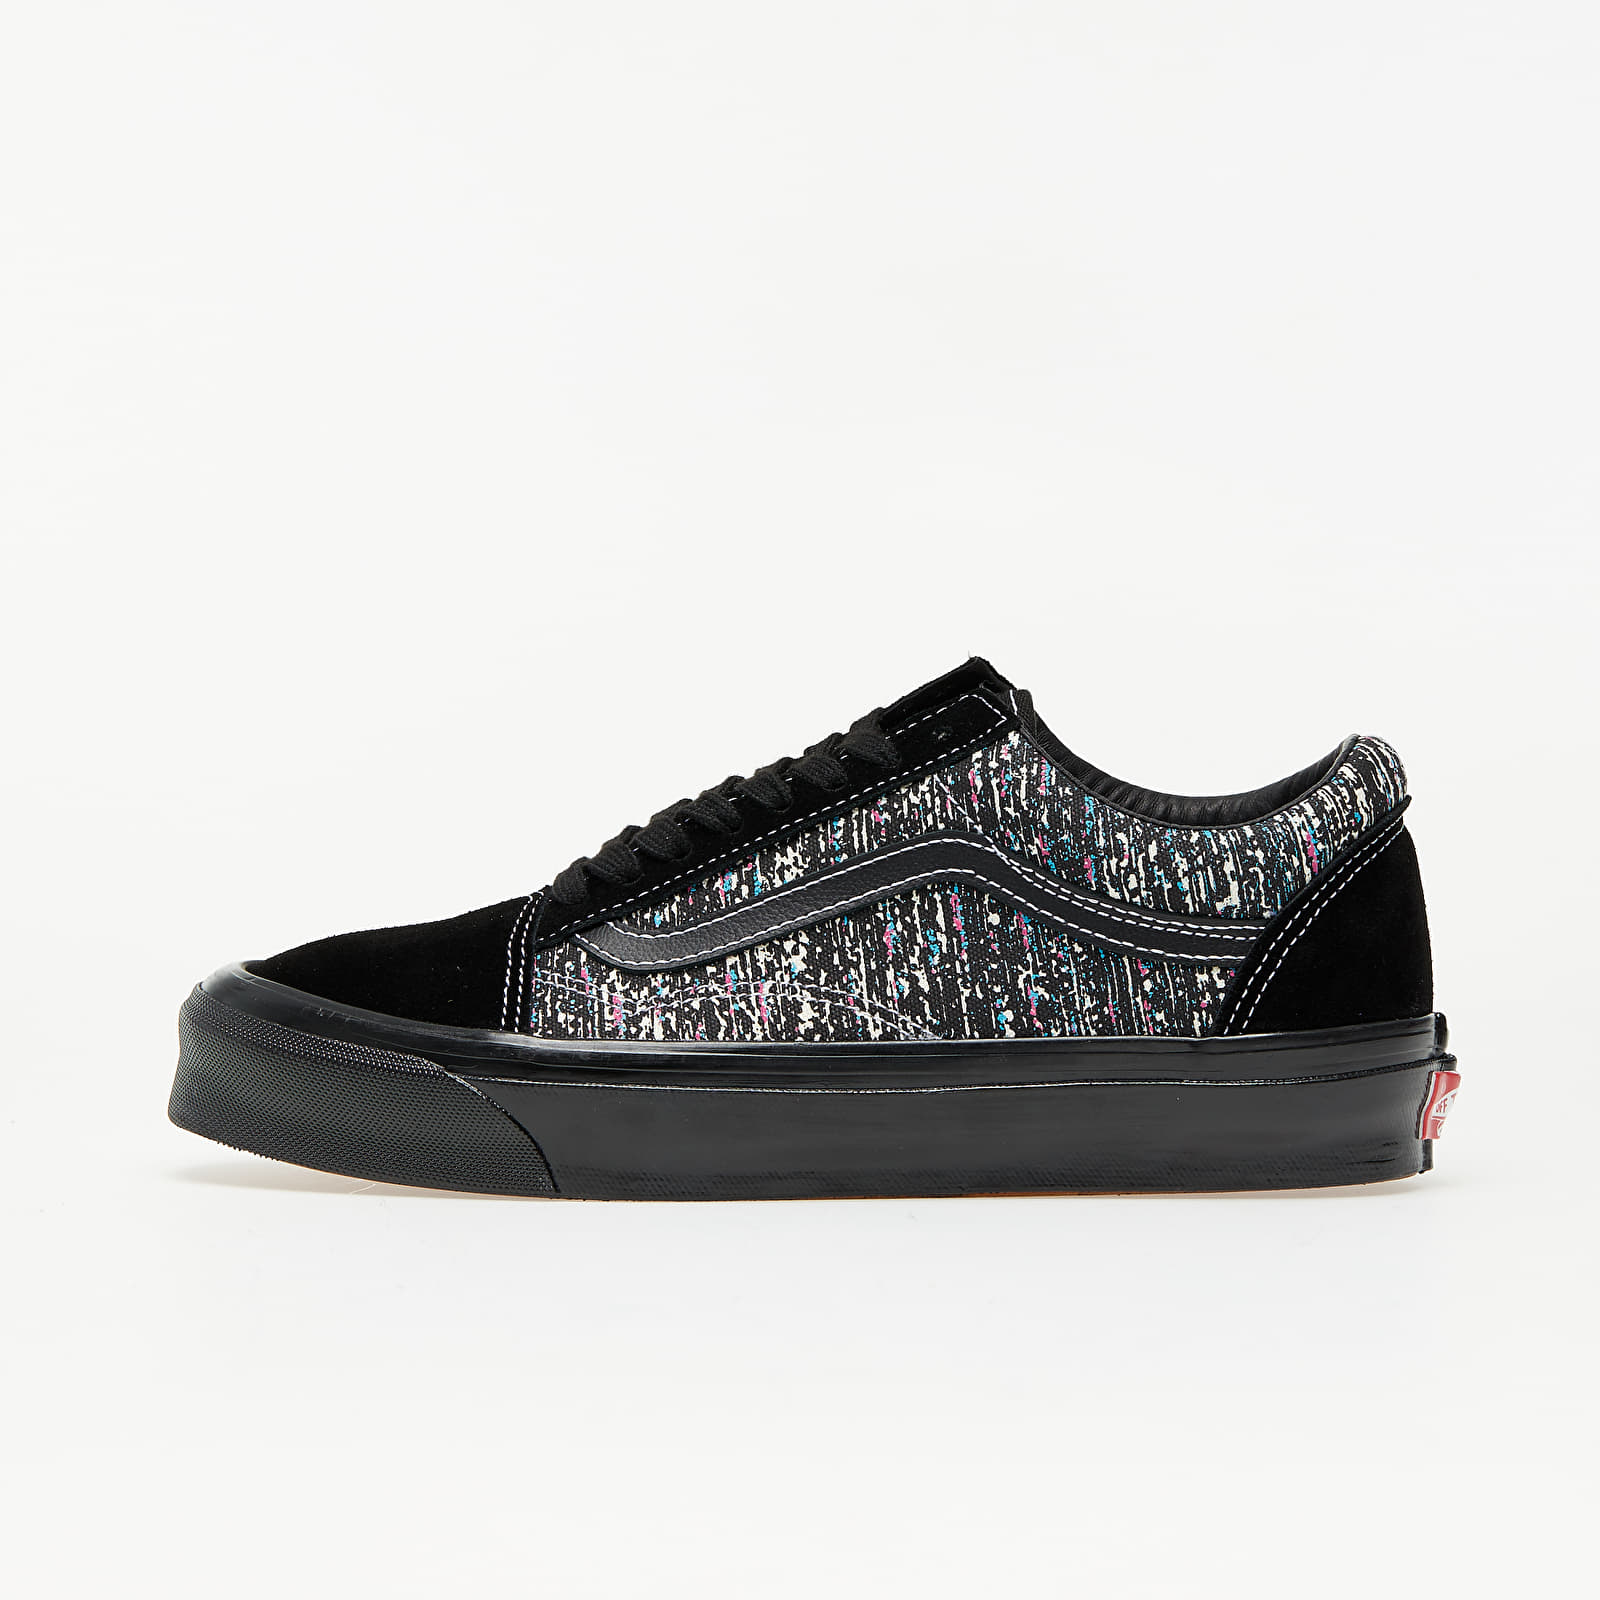 Мужская обувь Vans OG Old Skool LX (OG Static Print) Black/ Black